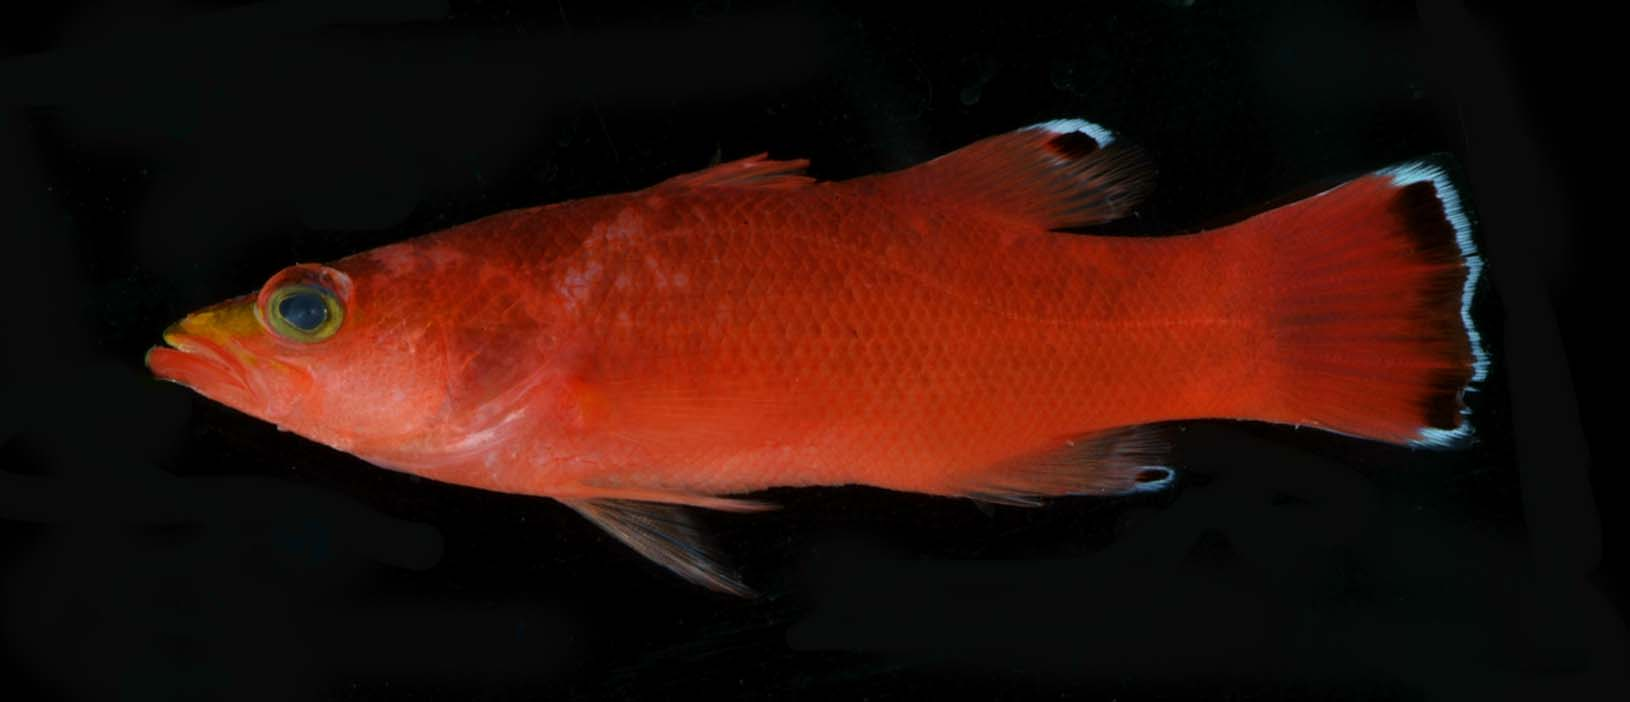 A photo of a cave basslet.<div class='credit'><strong>Credit:</strong> A photo of a cave basslet.</div>